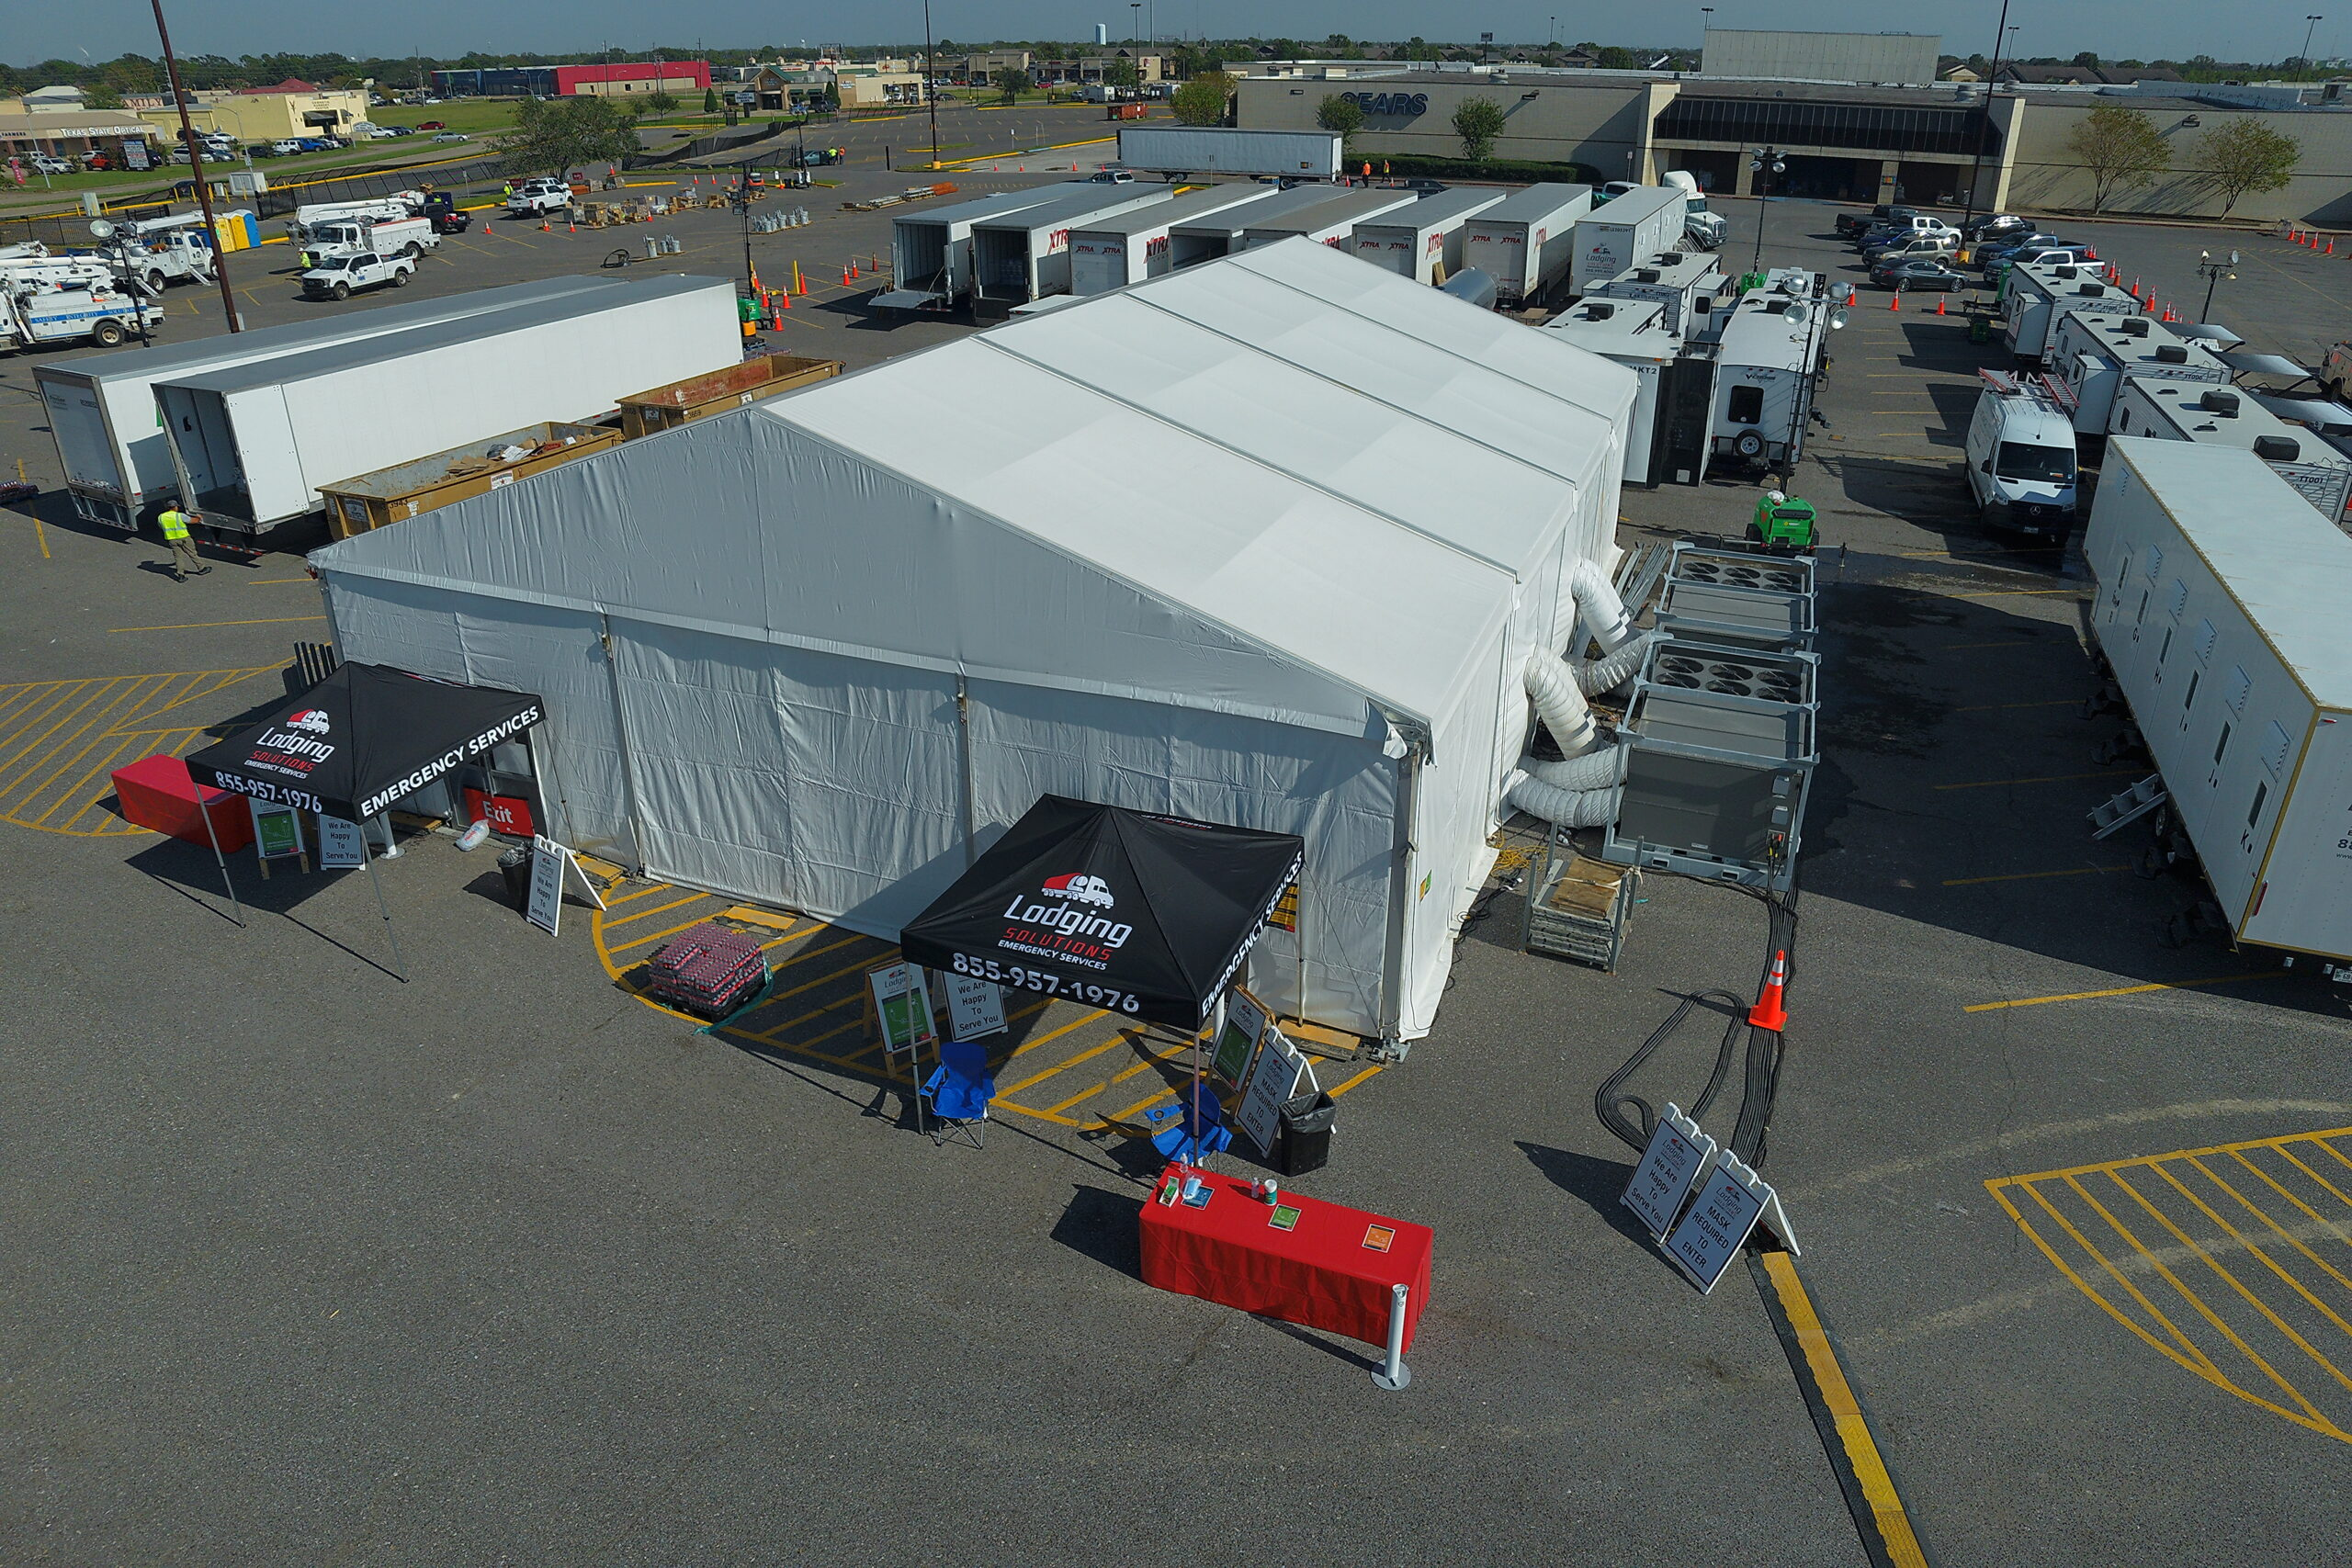 Lodging Solutions/Industrial Tent Systems Base Camp for Emergency Relief